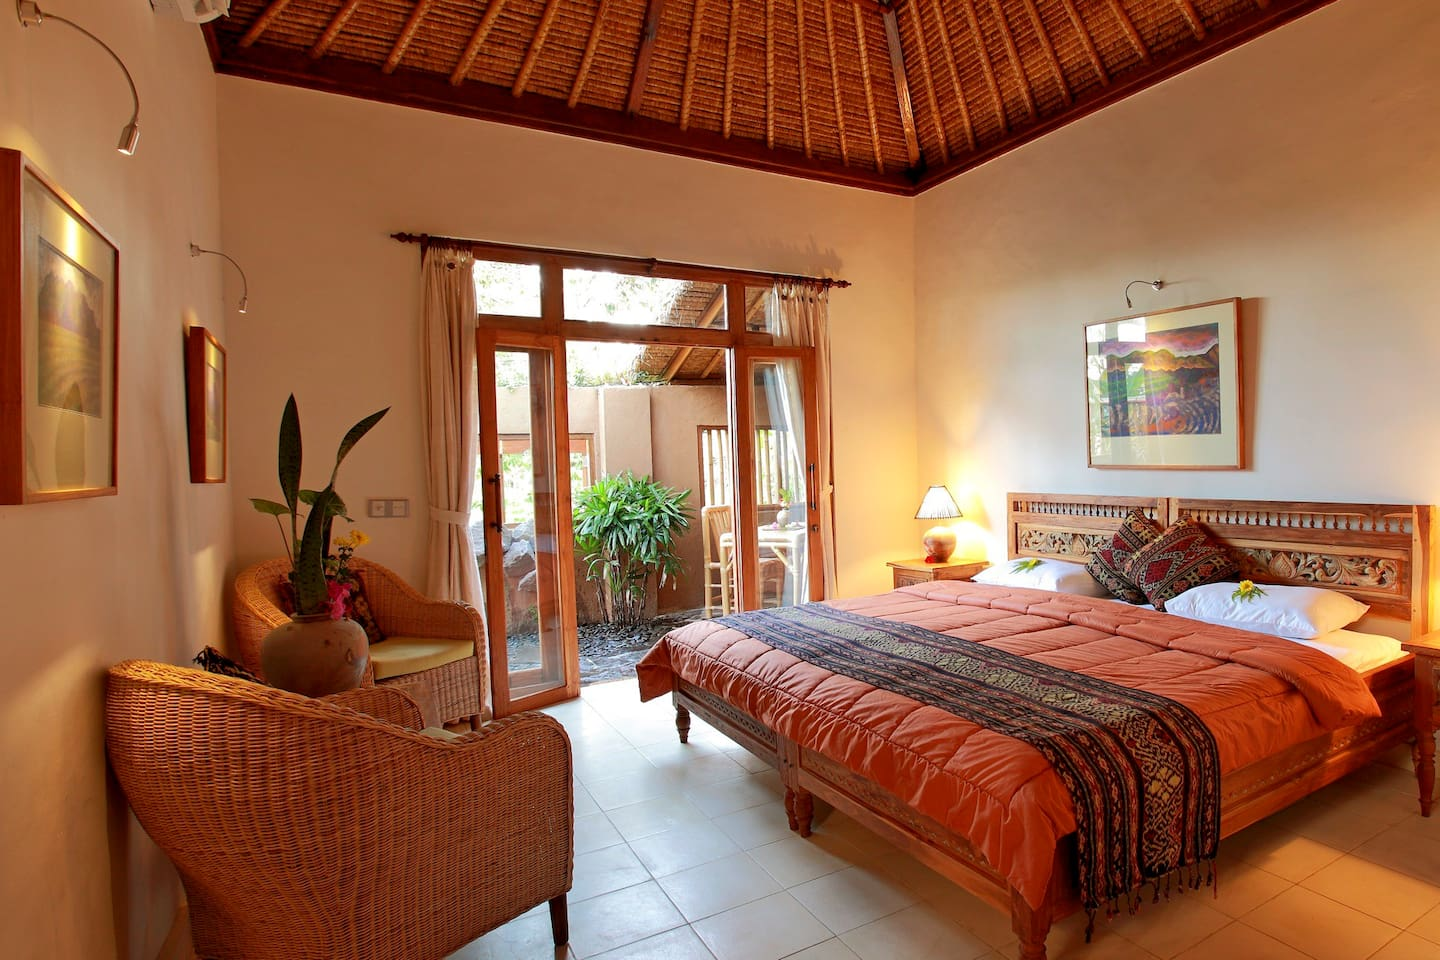 This is the self contained private hideaway with kitchen, courtyard and ricefield views